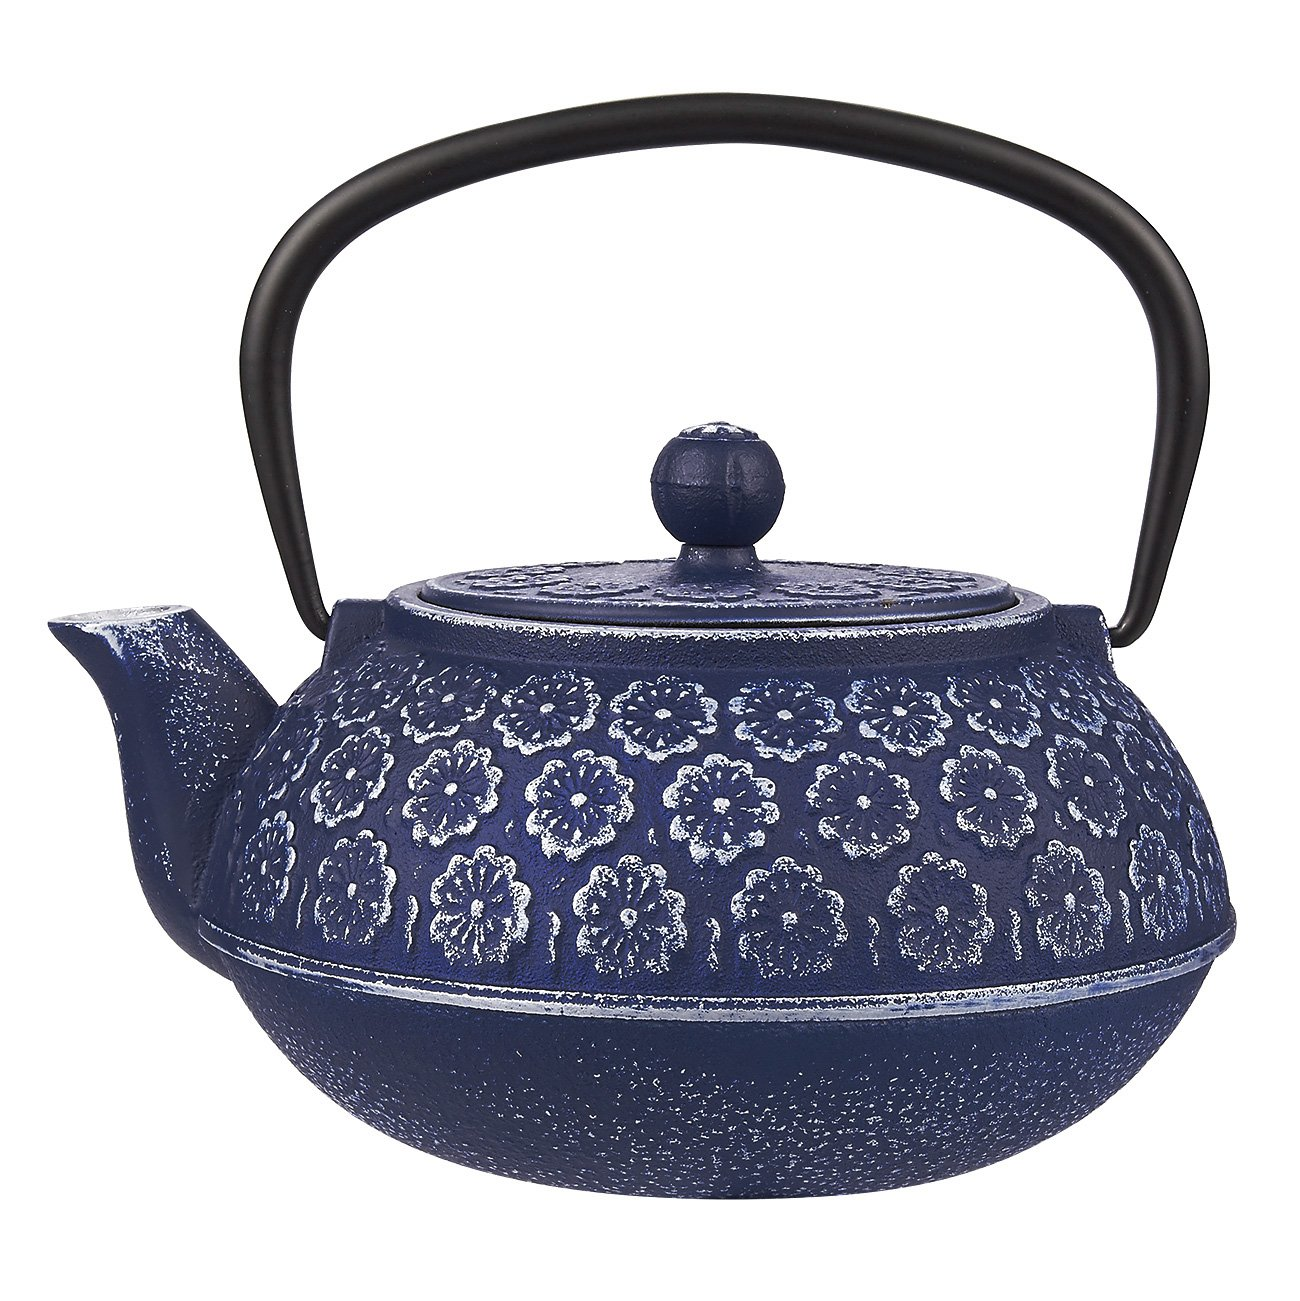 Blue Floral Cast Iron Teapot Kettle with Stainless Steel Infuser 34oz